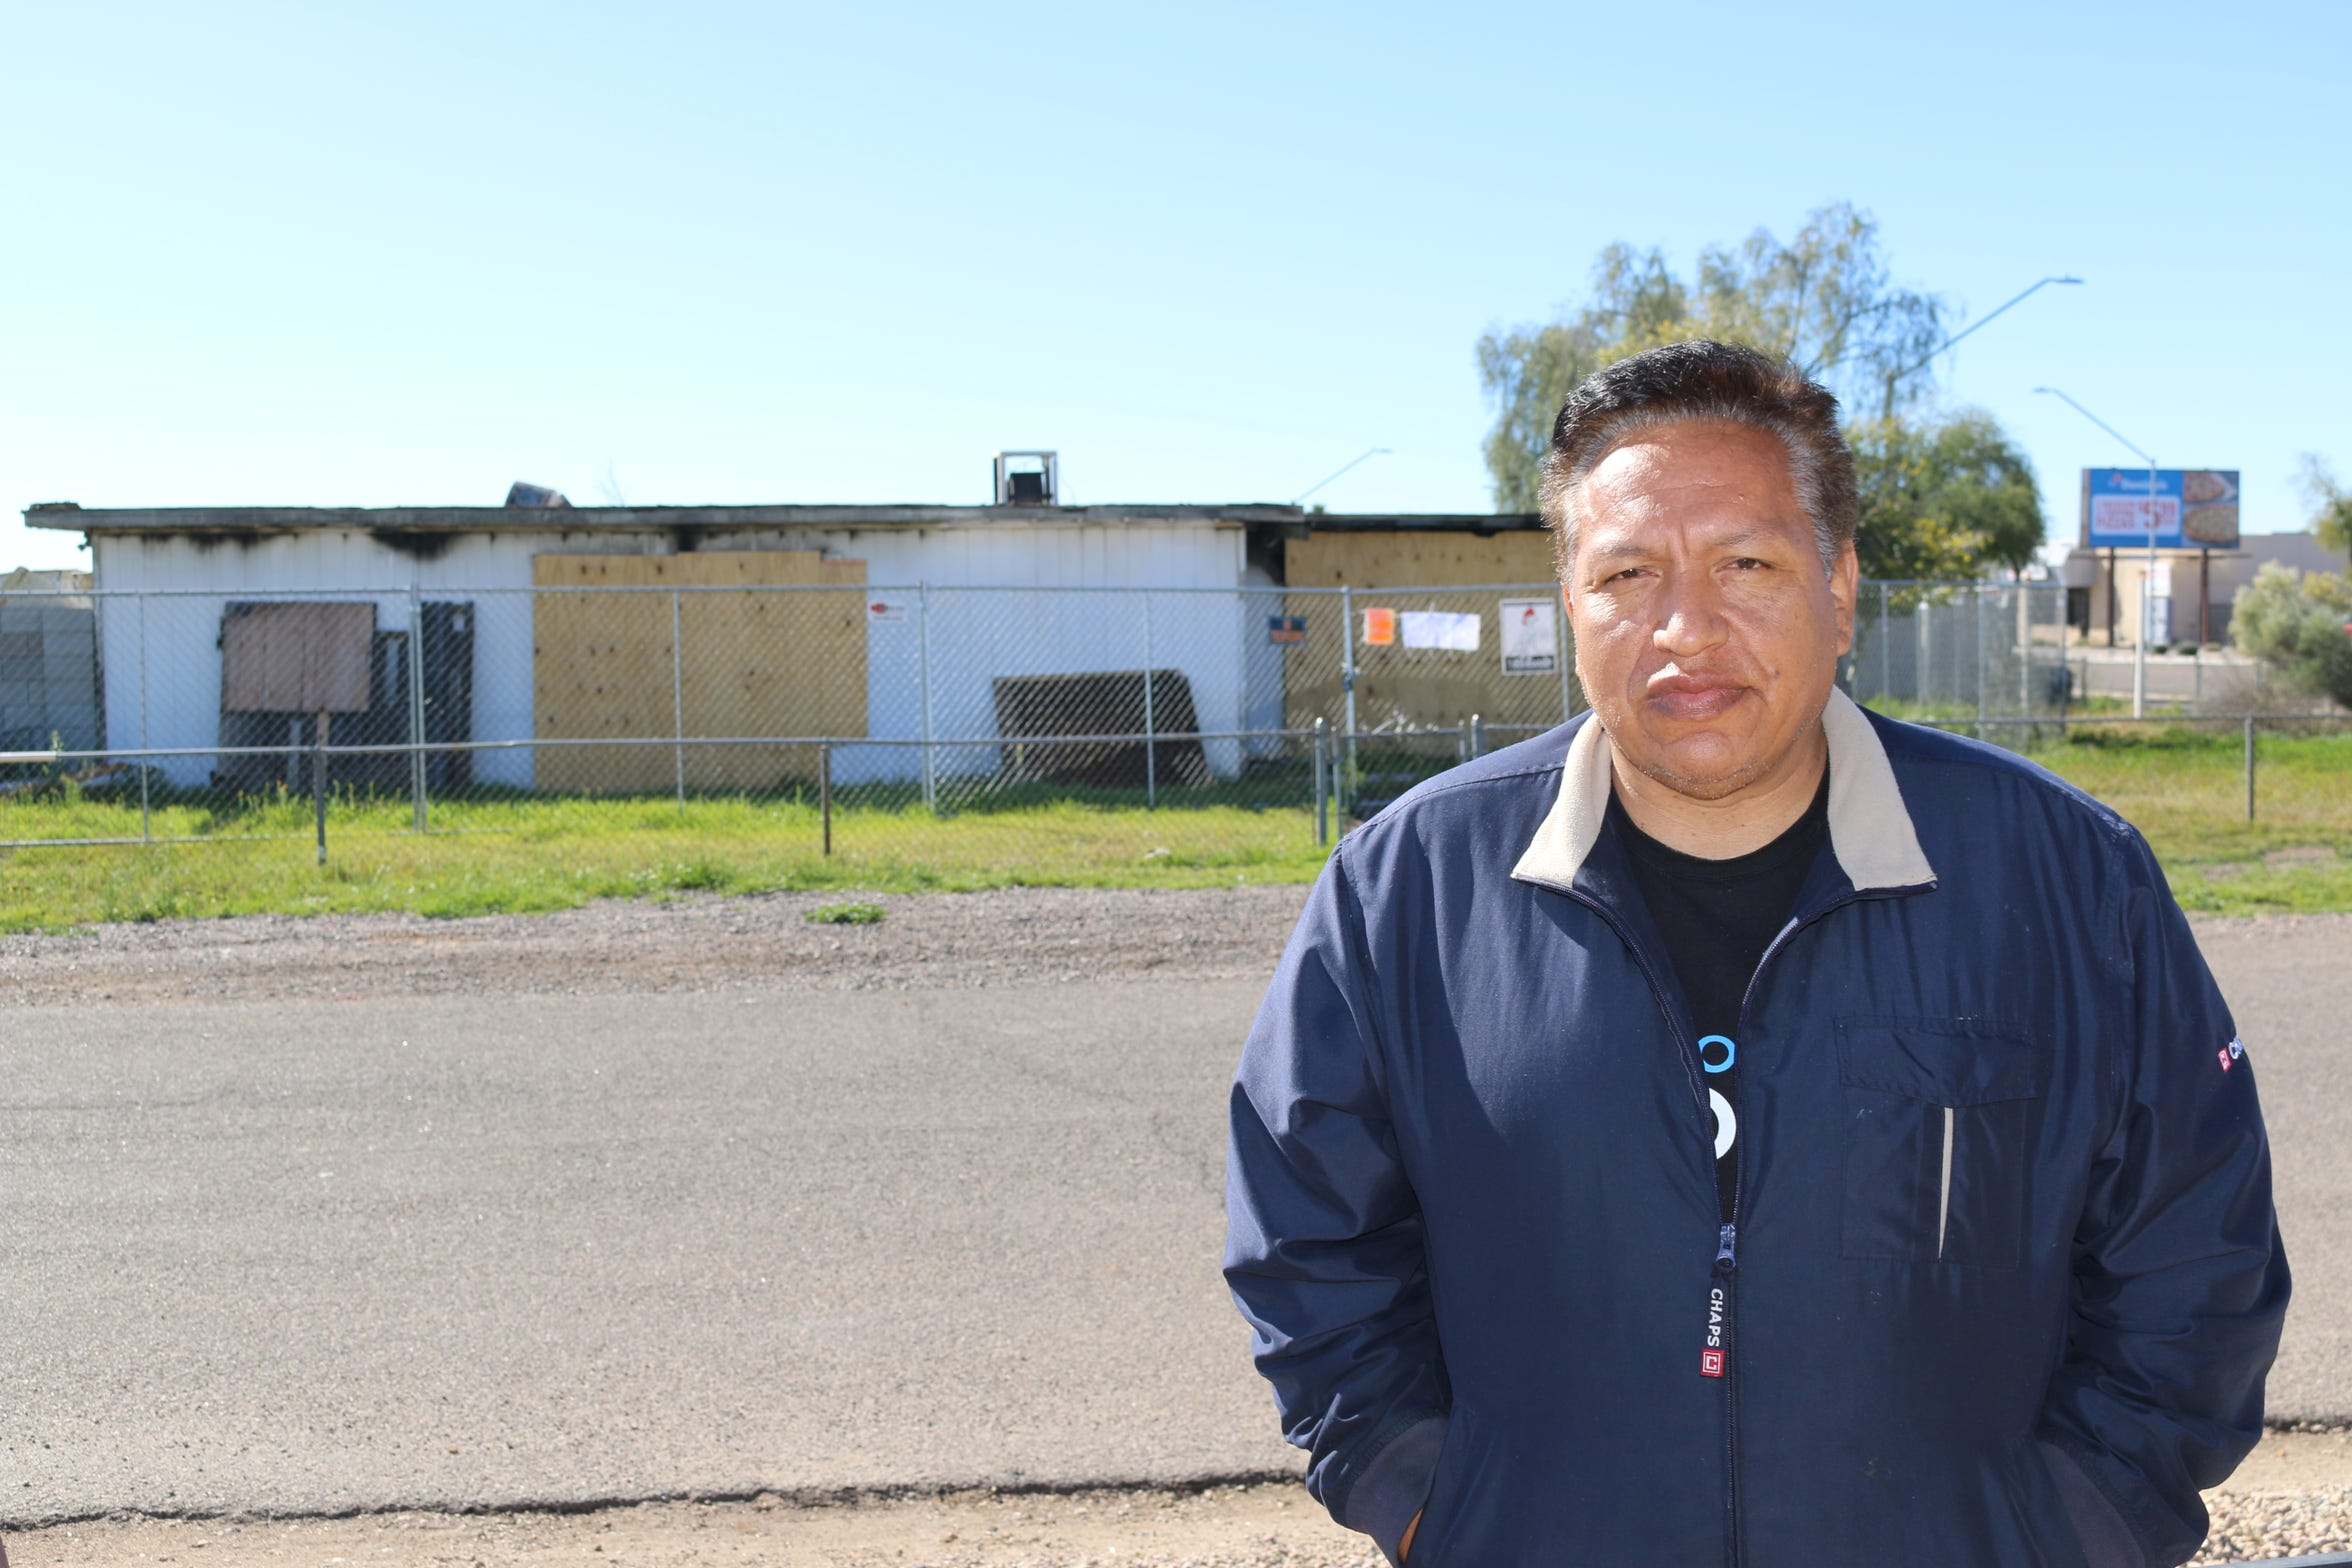 Vincent Orozco has watched vagrants come and go from a vacant property on Mary Jane Lane in Glendale for years.